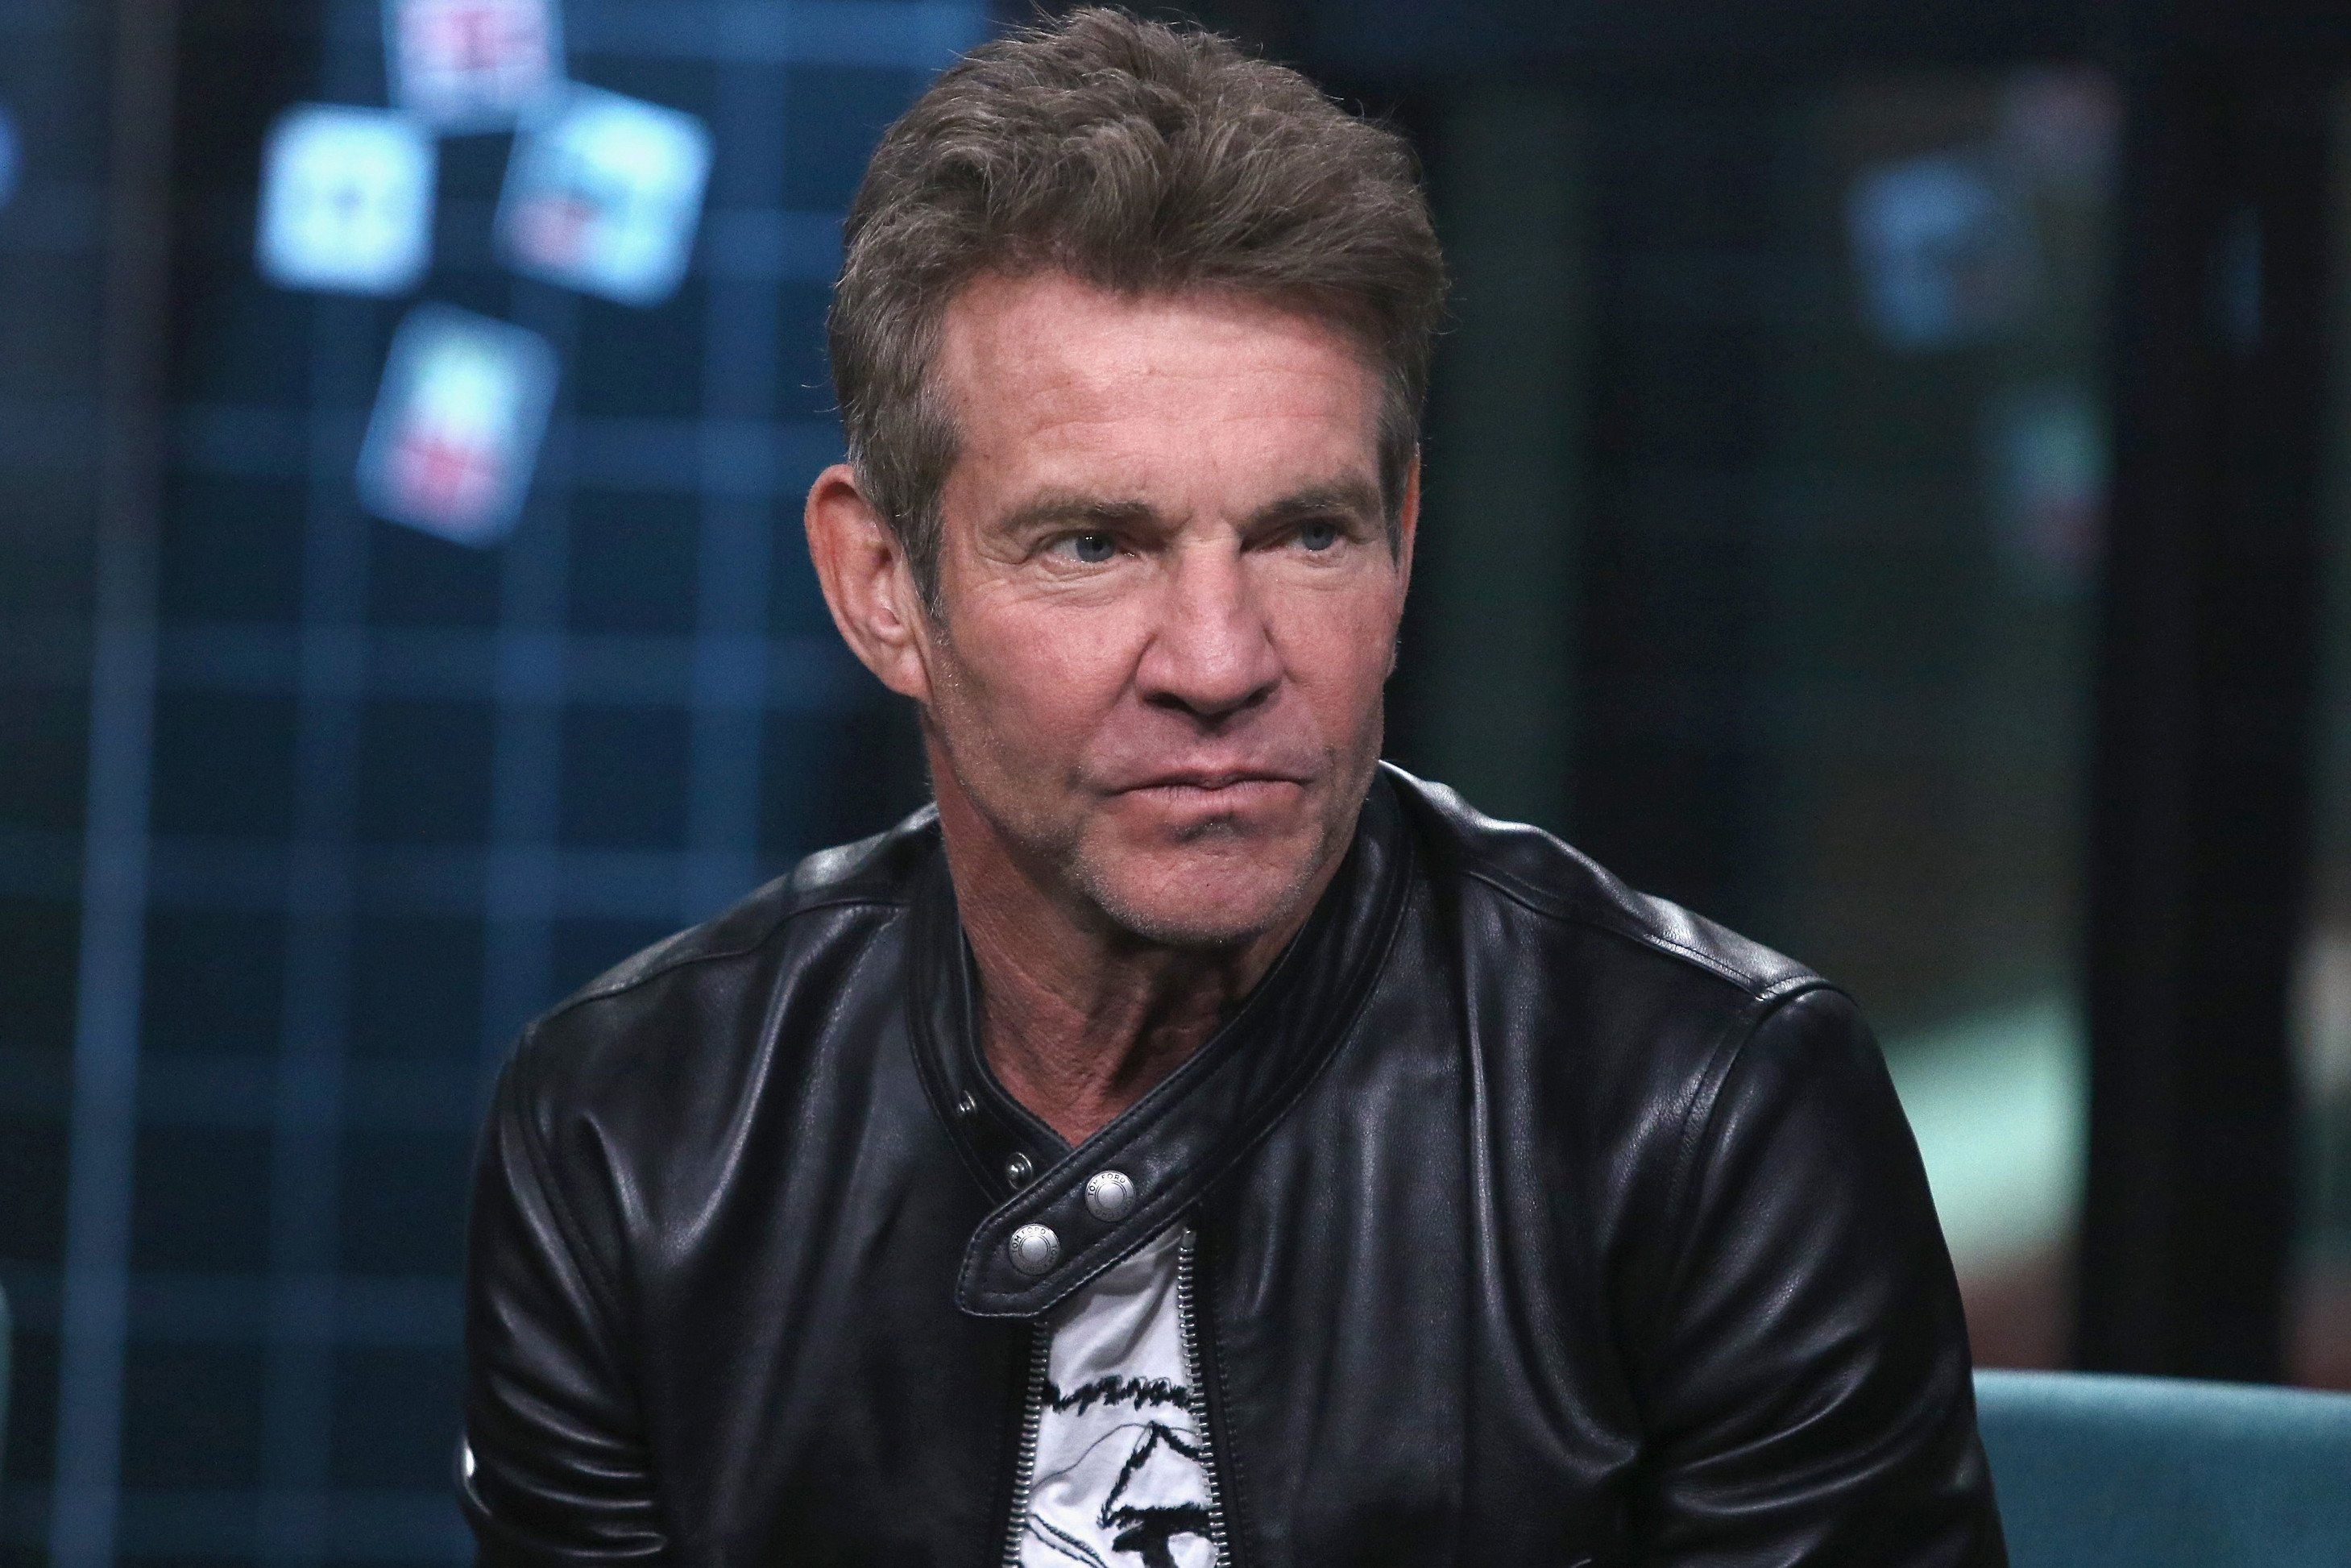 Dennis Quaid was using two grams of cocaine a day before rehab